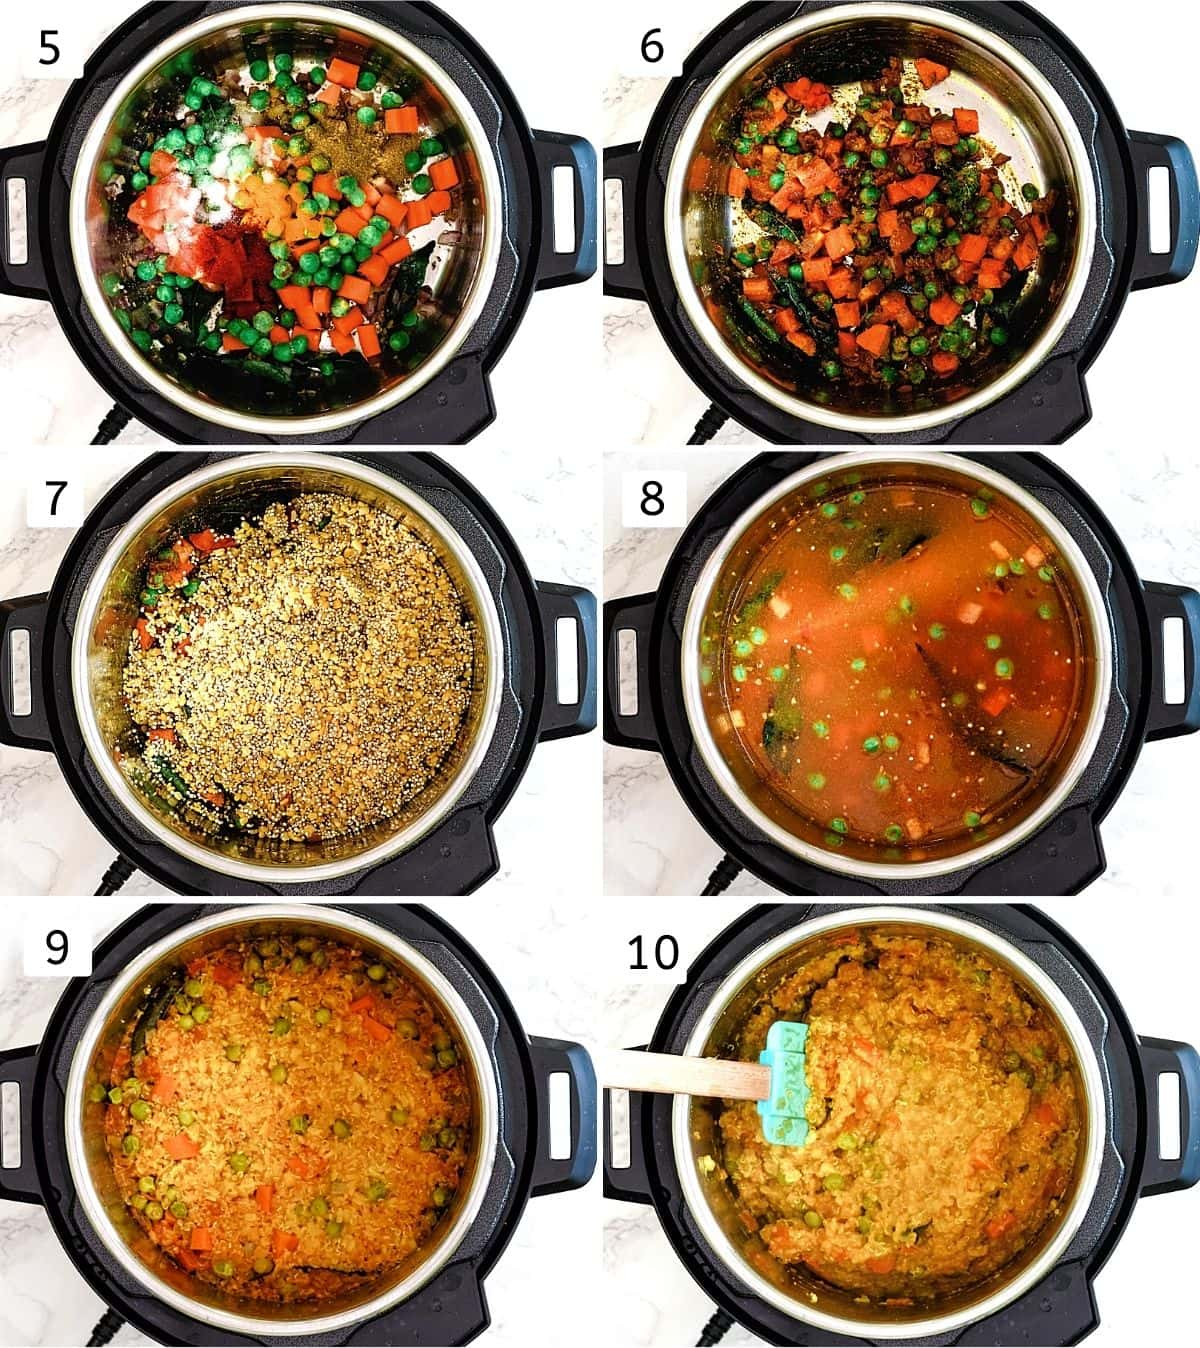 Collage of 6 steps showing adding veggies, spices, mixing, adding quinoa, lentils, water and cooked khichdi.